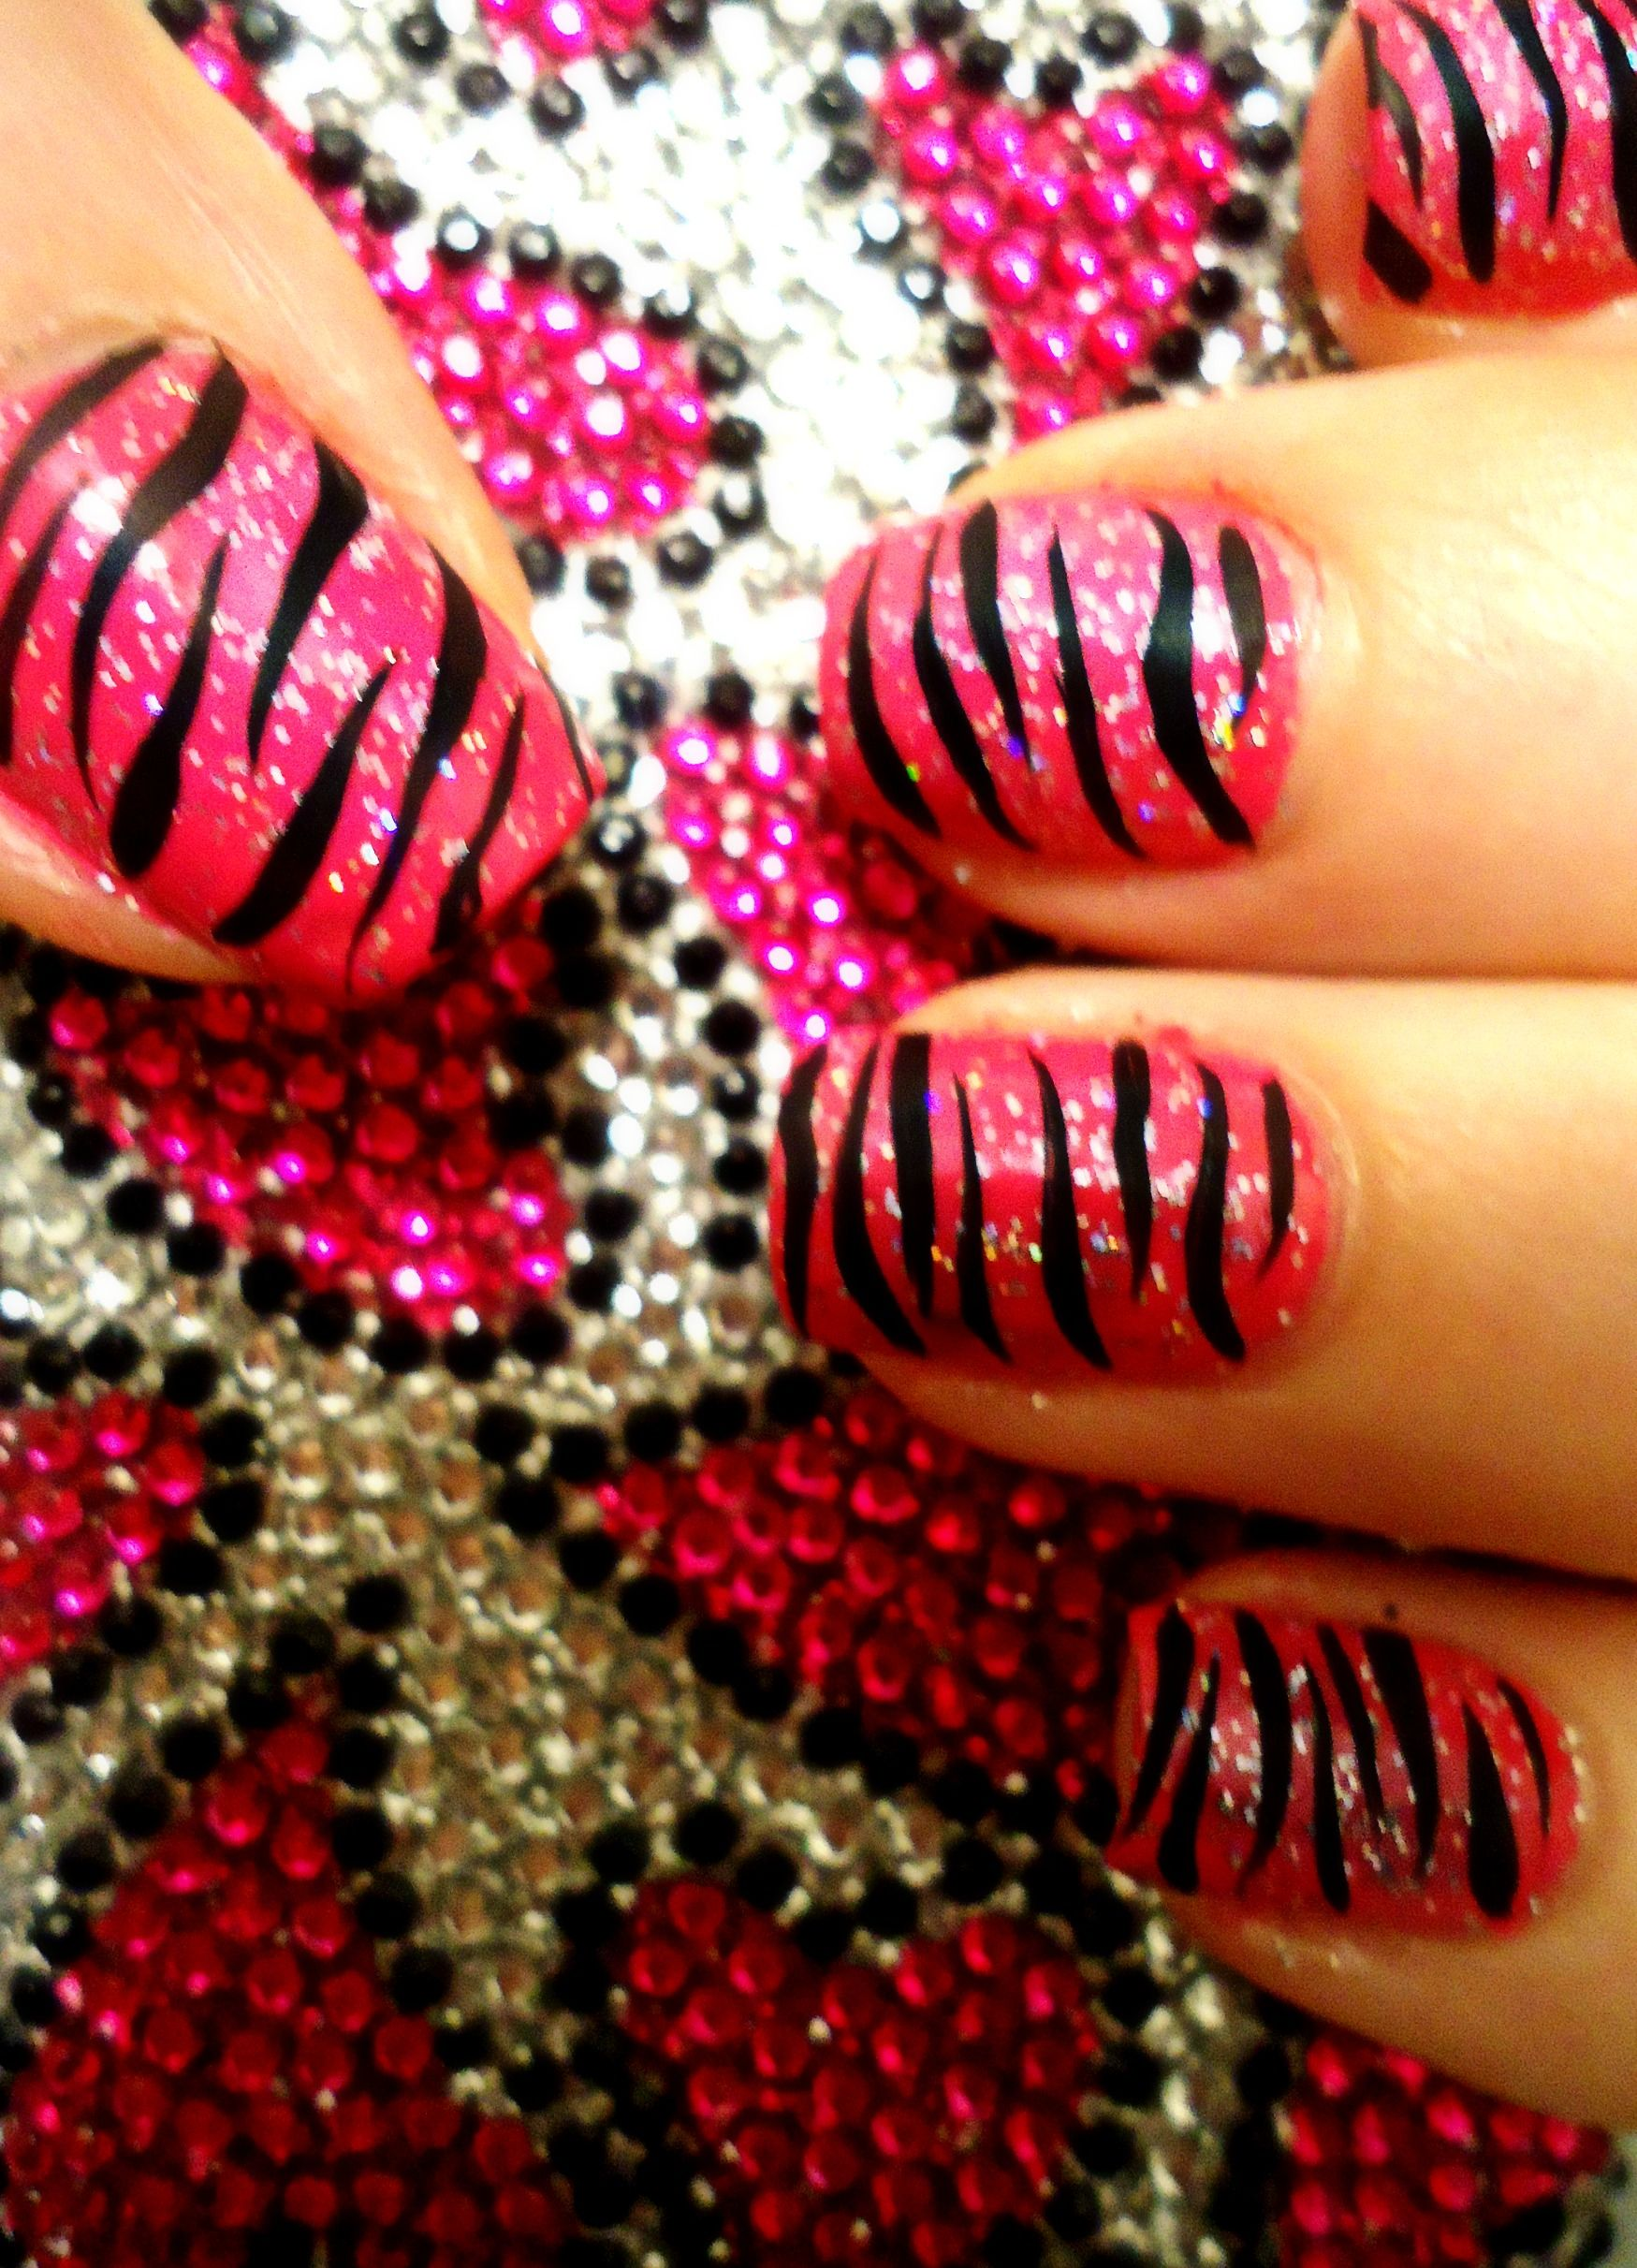 Pink zebra nails nails pinterest - Find This Pin And More On Nails Flashy Pink Zebra